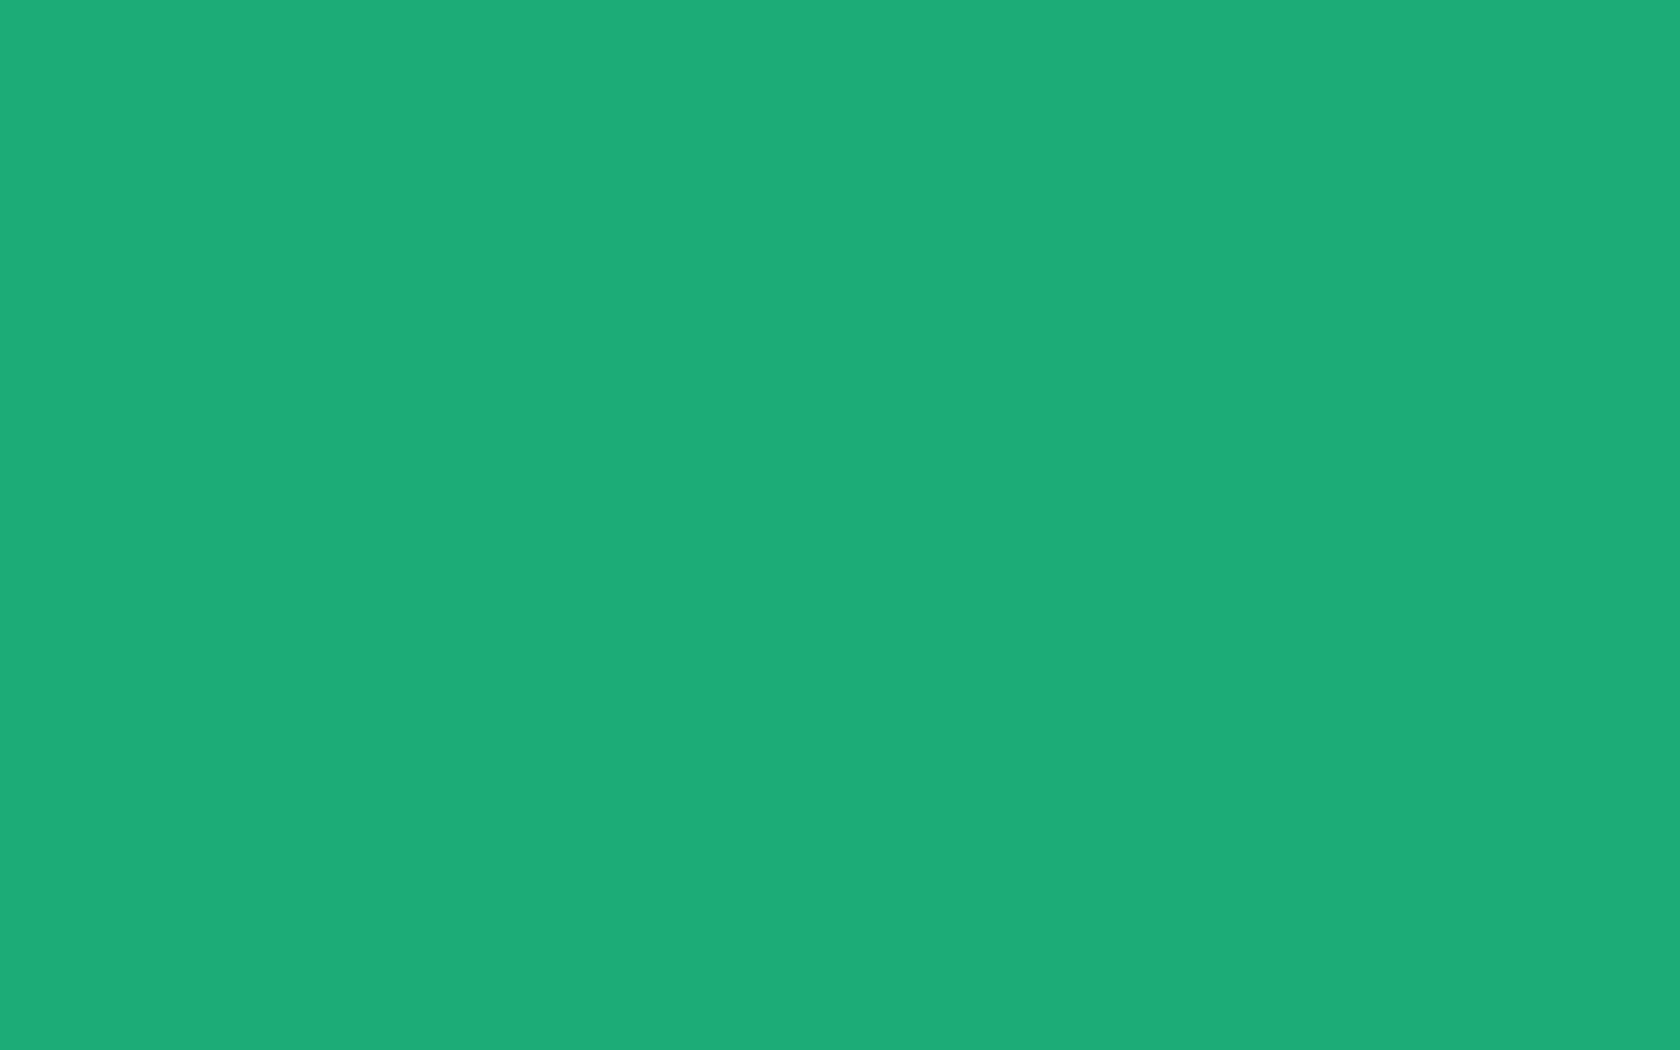 1680x1050 Green Crayola Solid Color Background